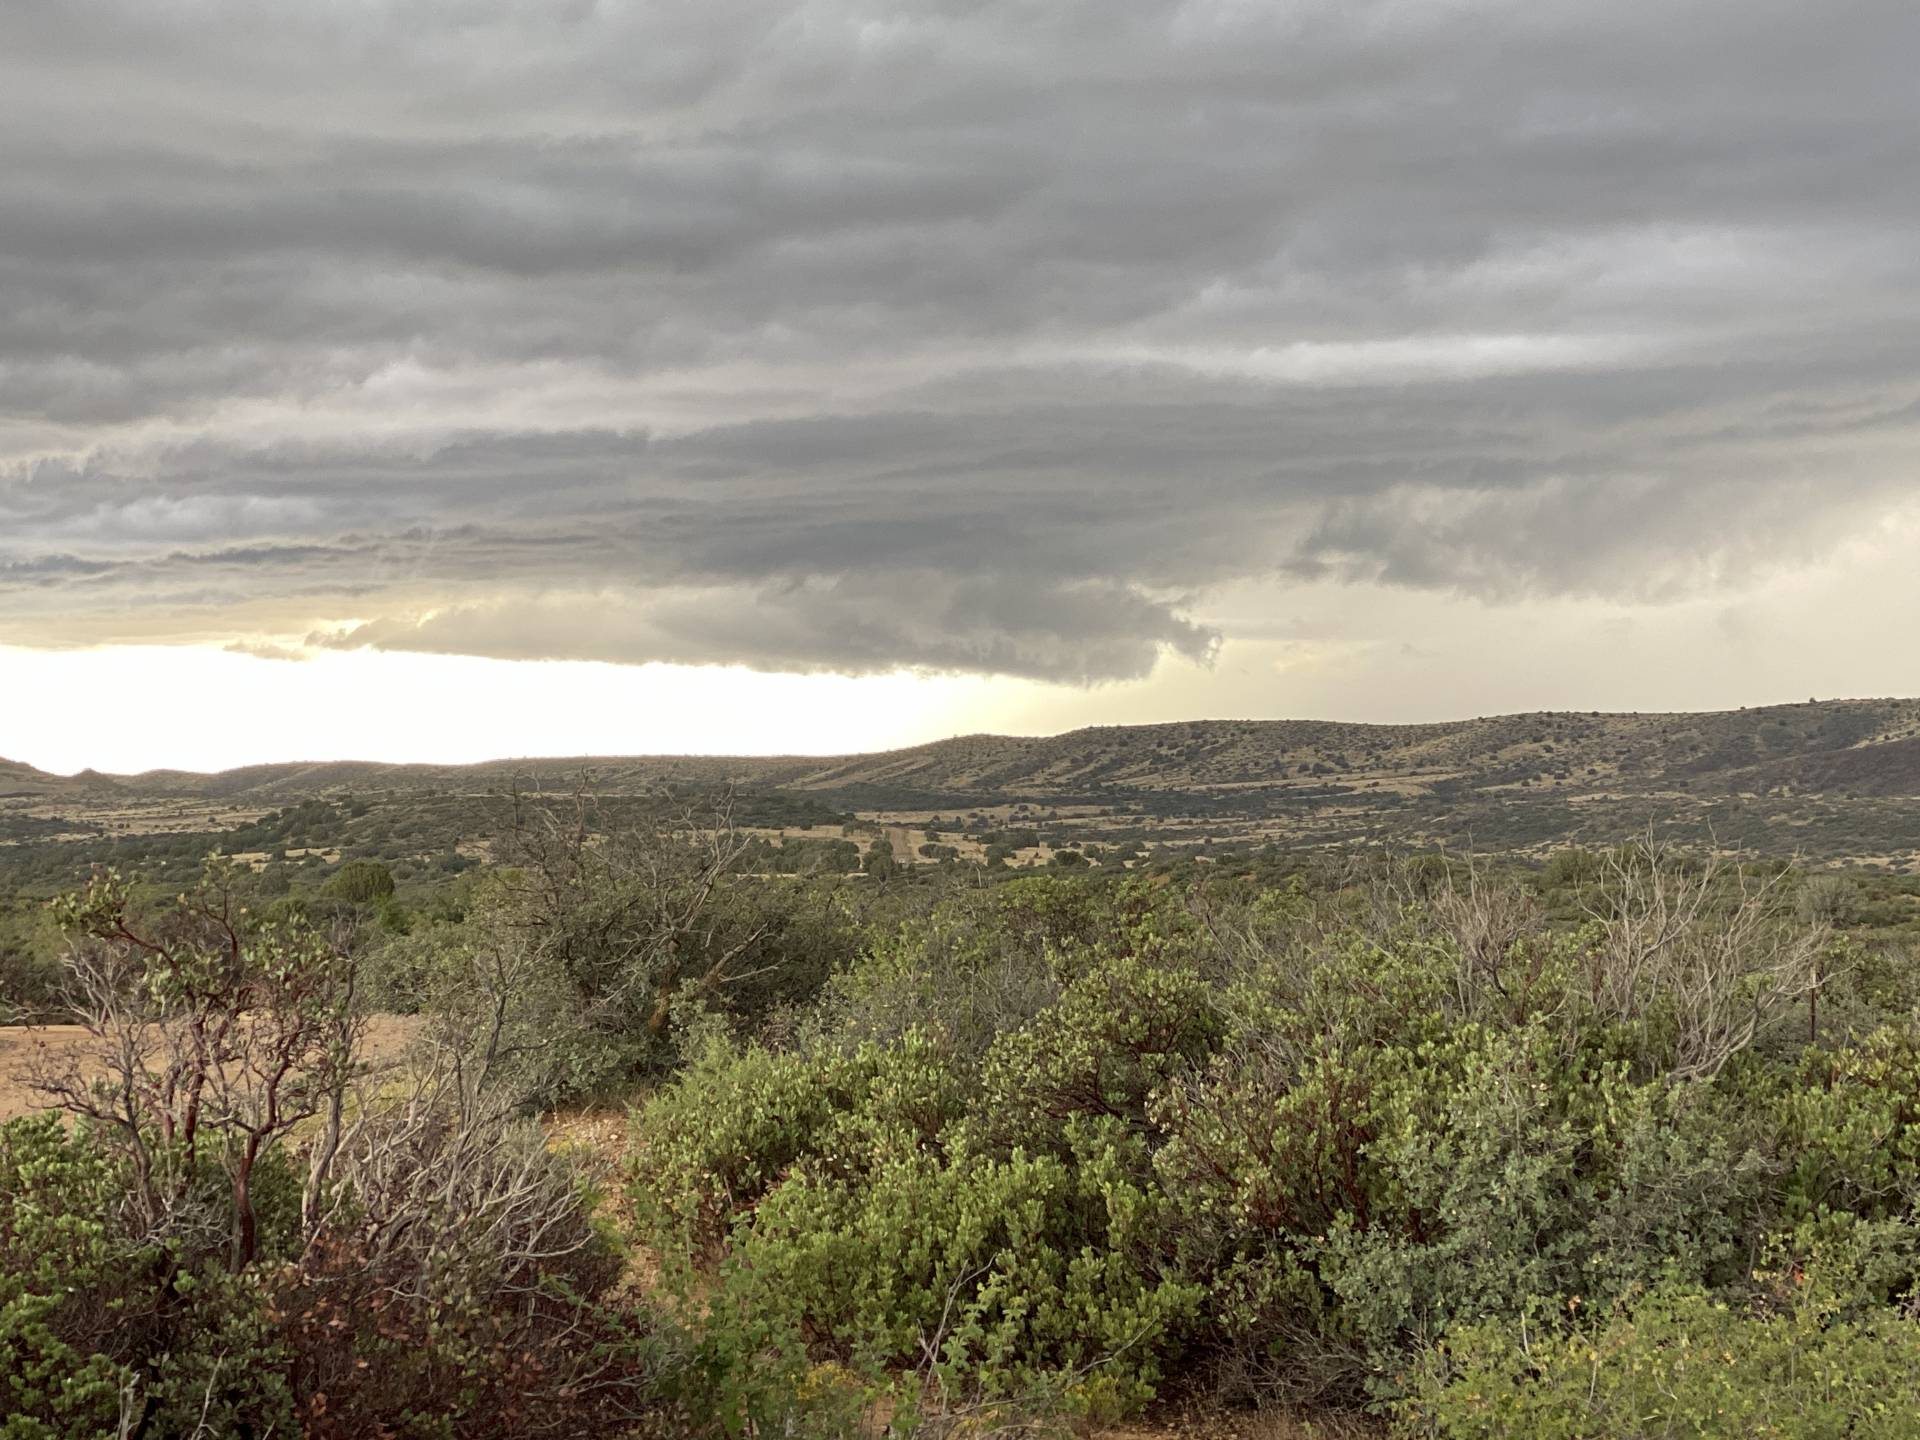 The cell over Spring Valley now. #azwx